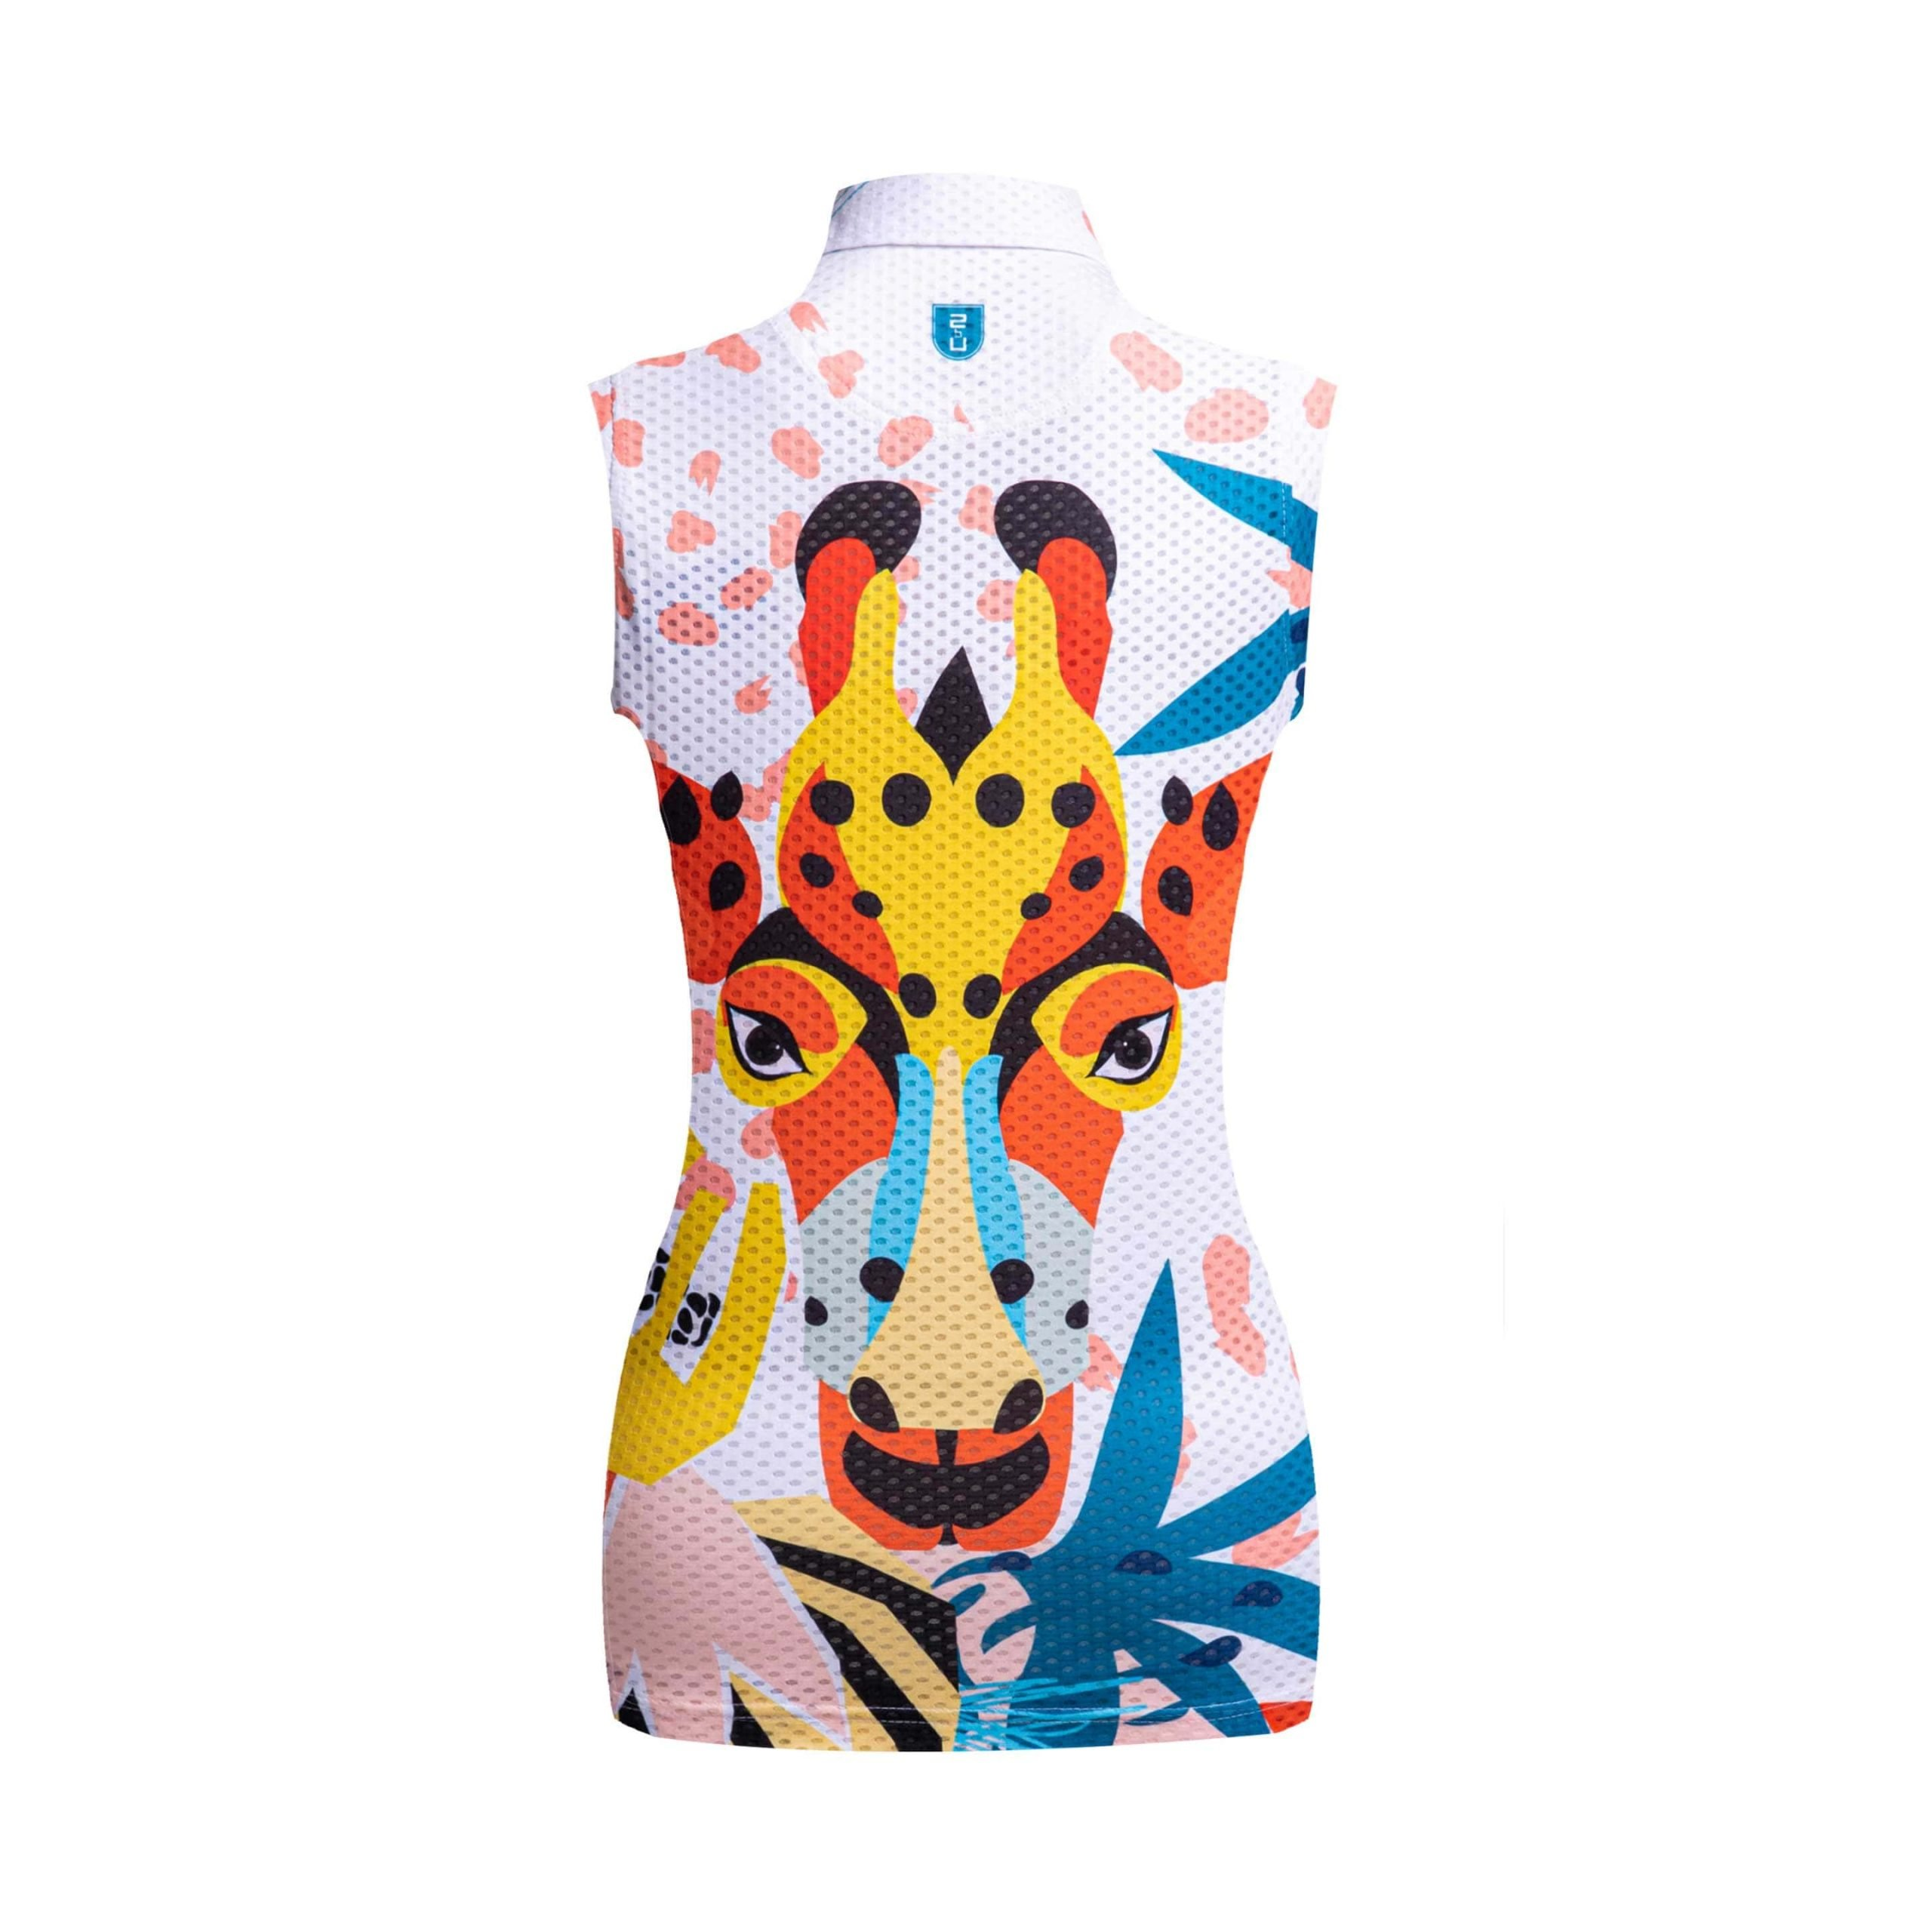 Golf shirt - Giraffe (sleeveless)